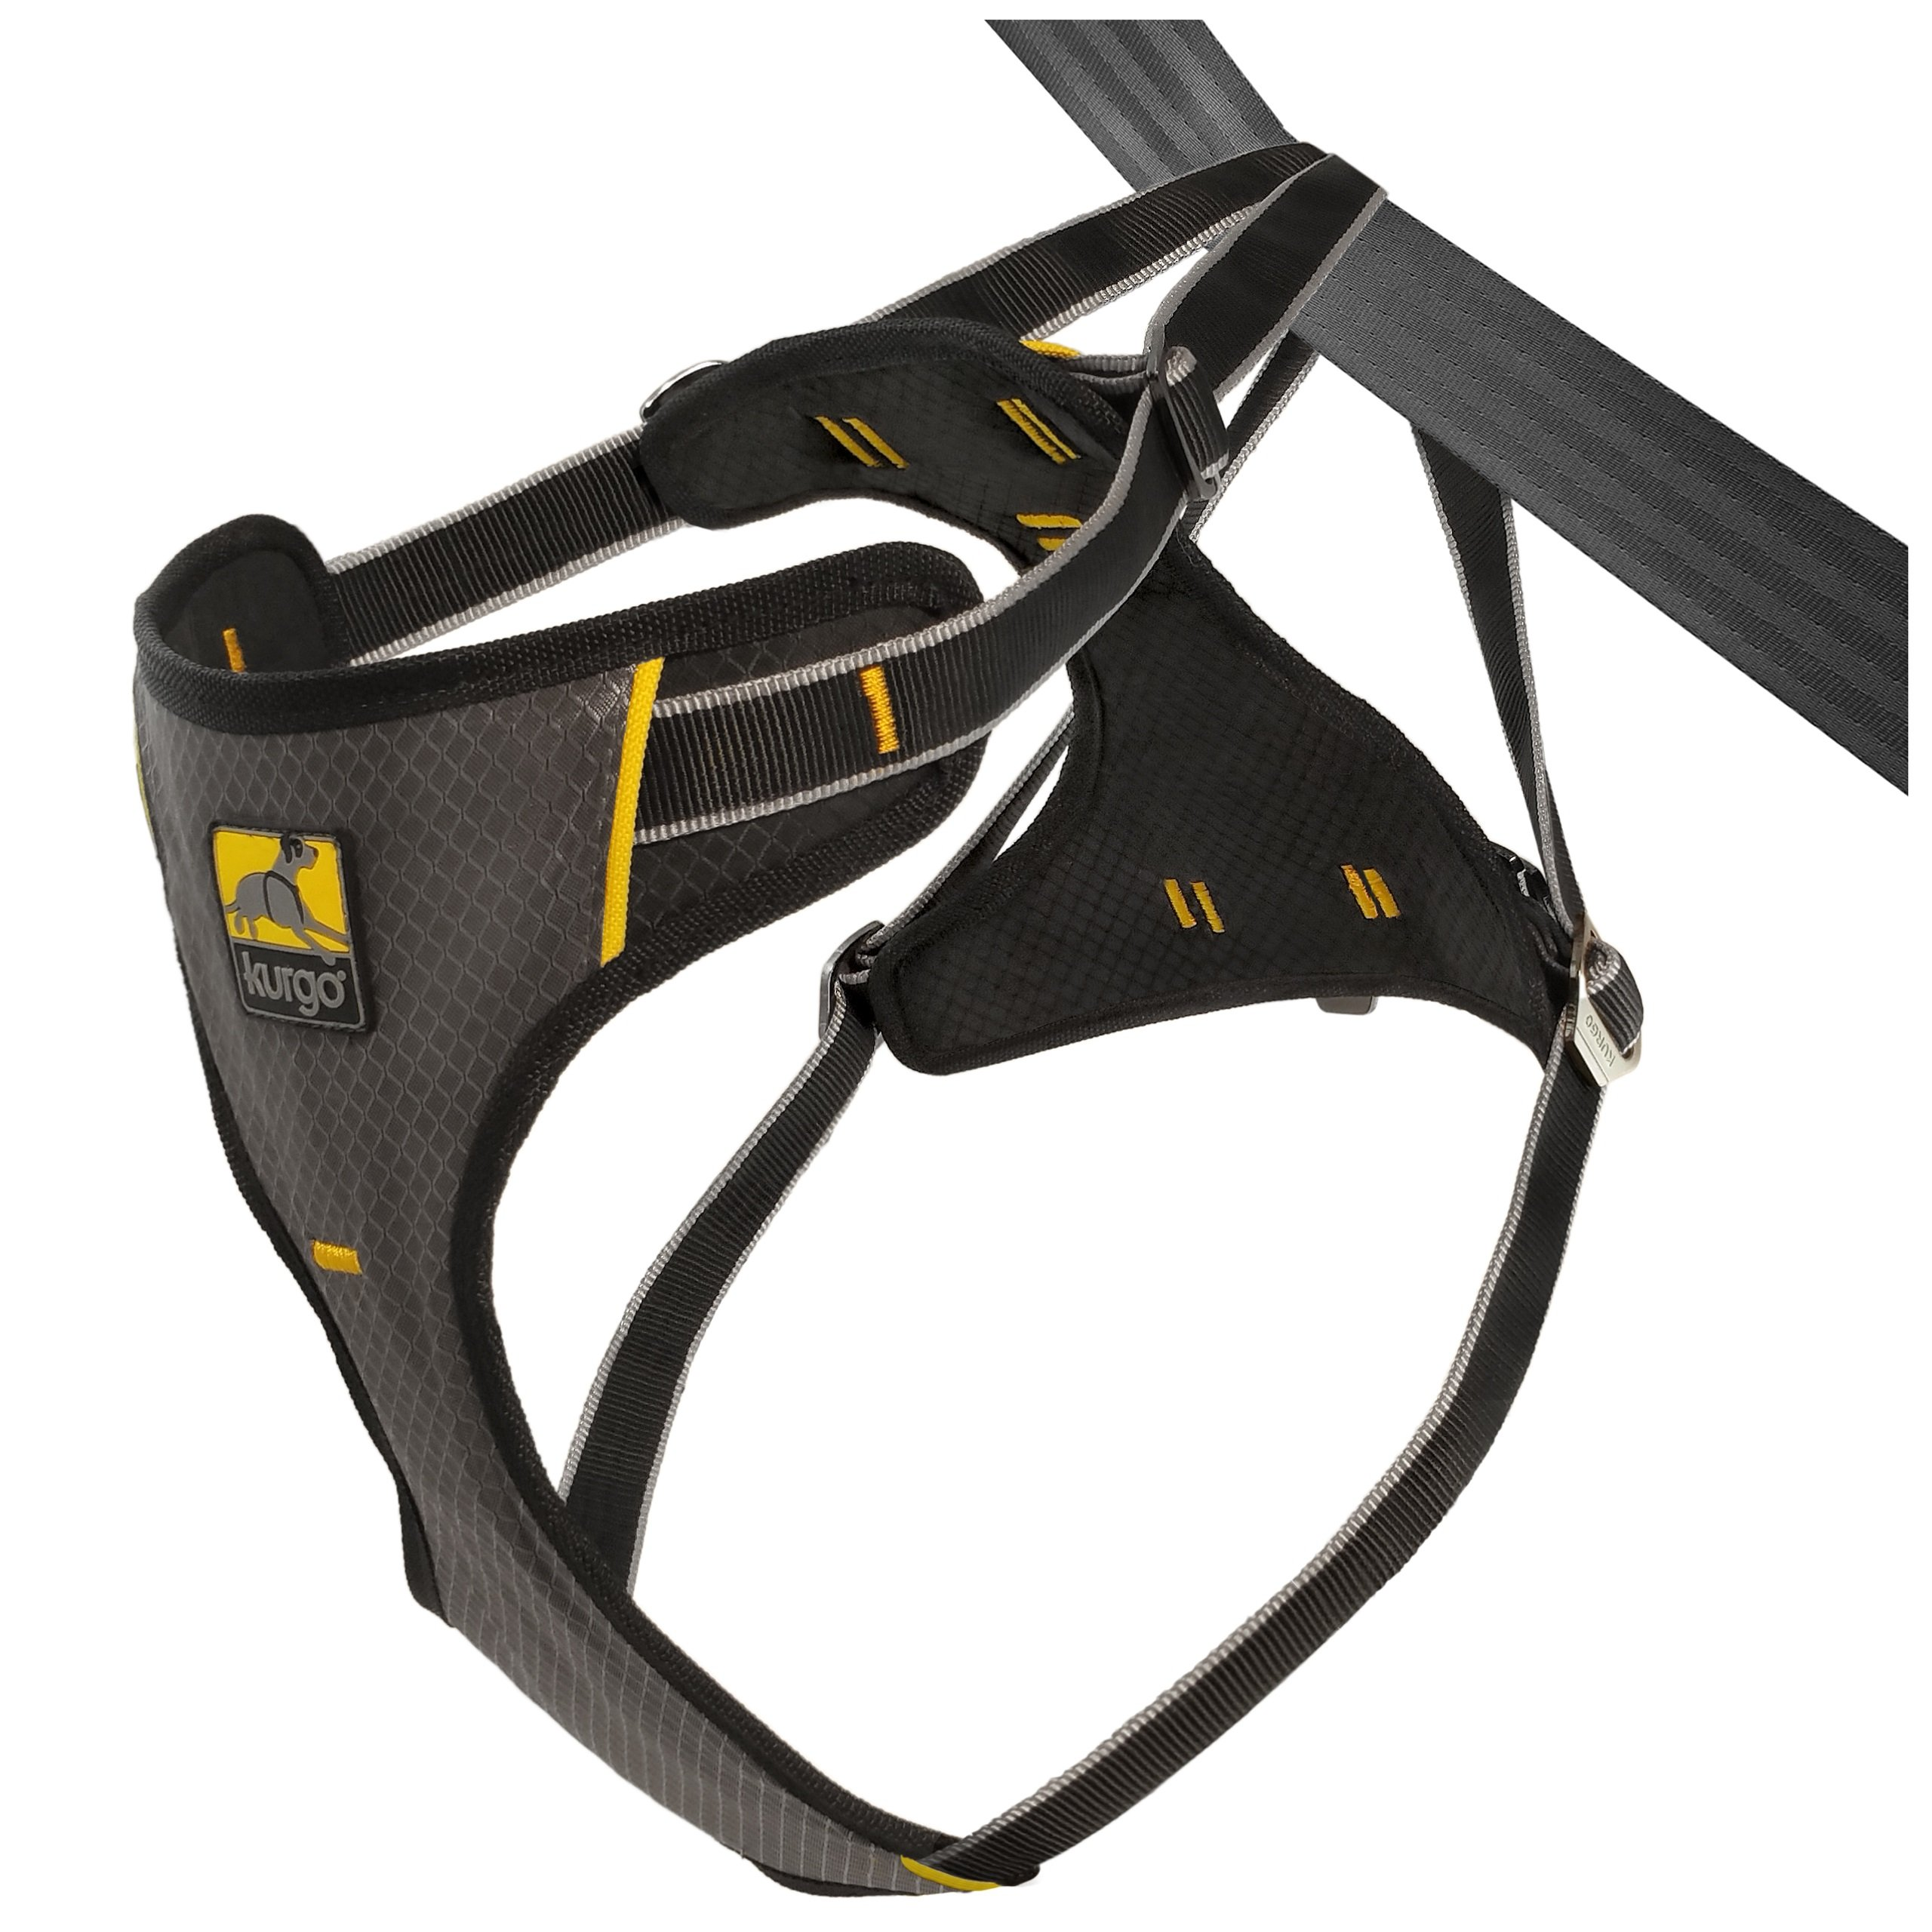 Kurgo Impact Dog Car Harness | Crash Tested Dog Car Harness | Safety Harness for Dogs | Pet Seatbelt Harness | Up to 105 lbs | For Small, Medium, & Large Dogs | Black / Charcoal by Kurgo